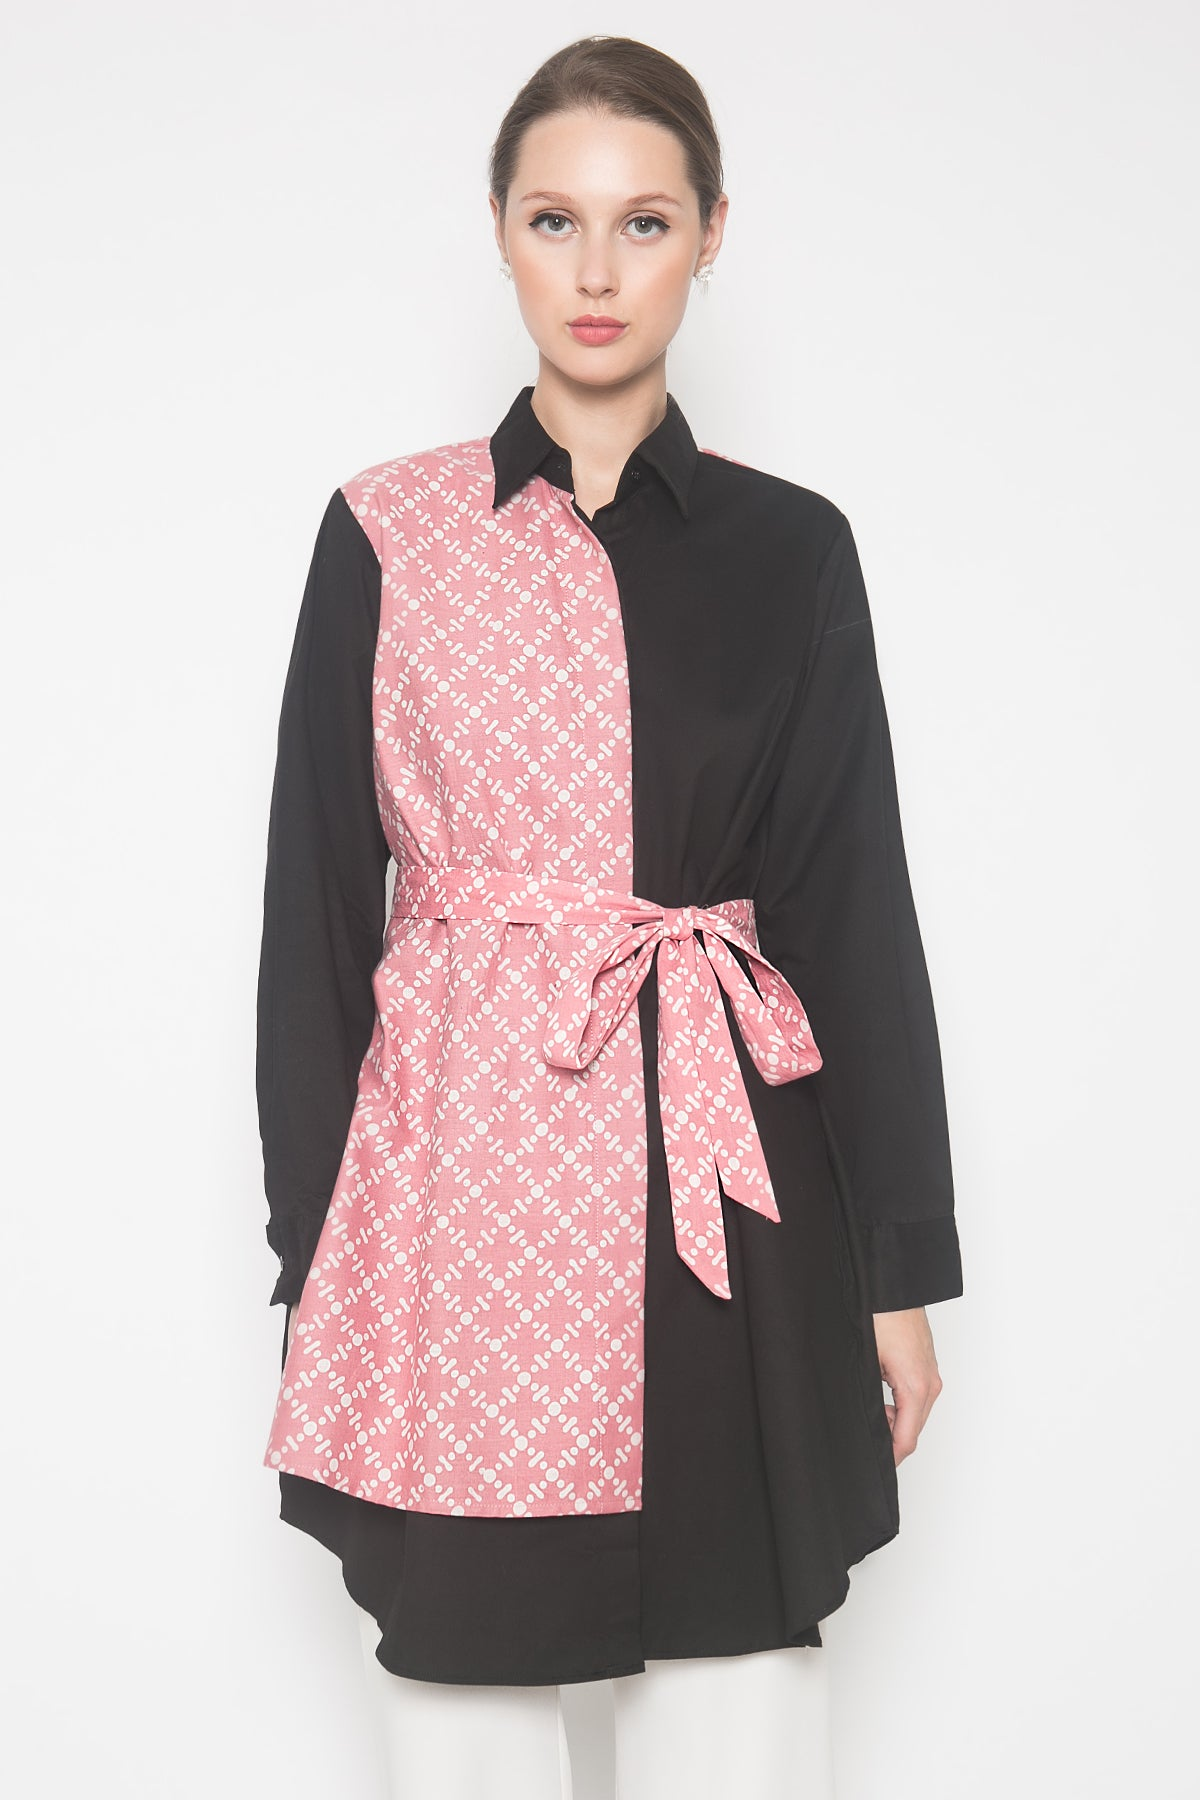 Amora Dress in Black Pink